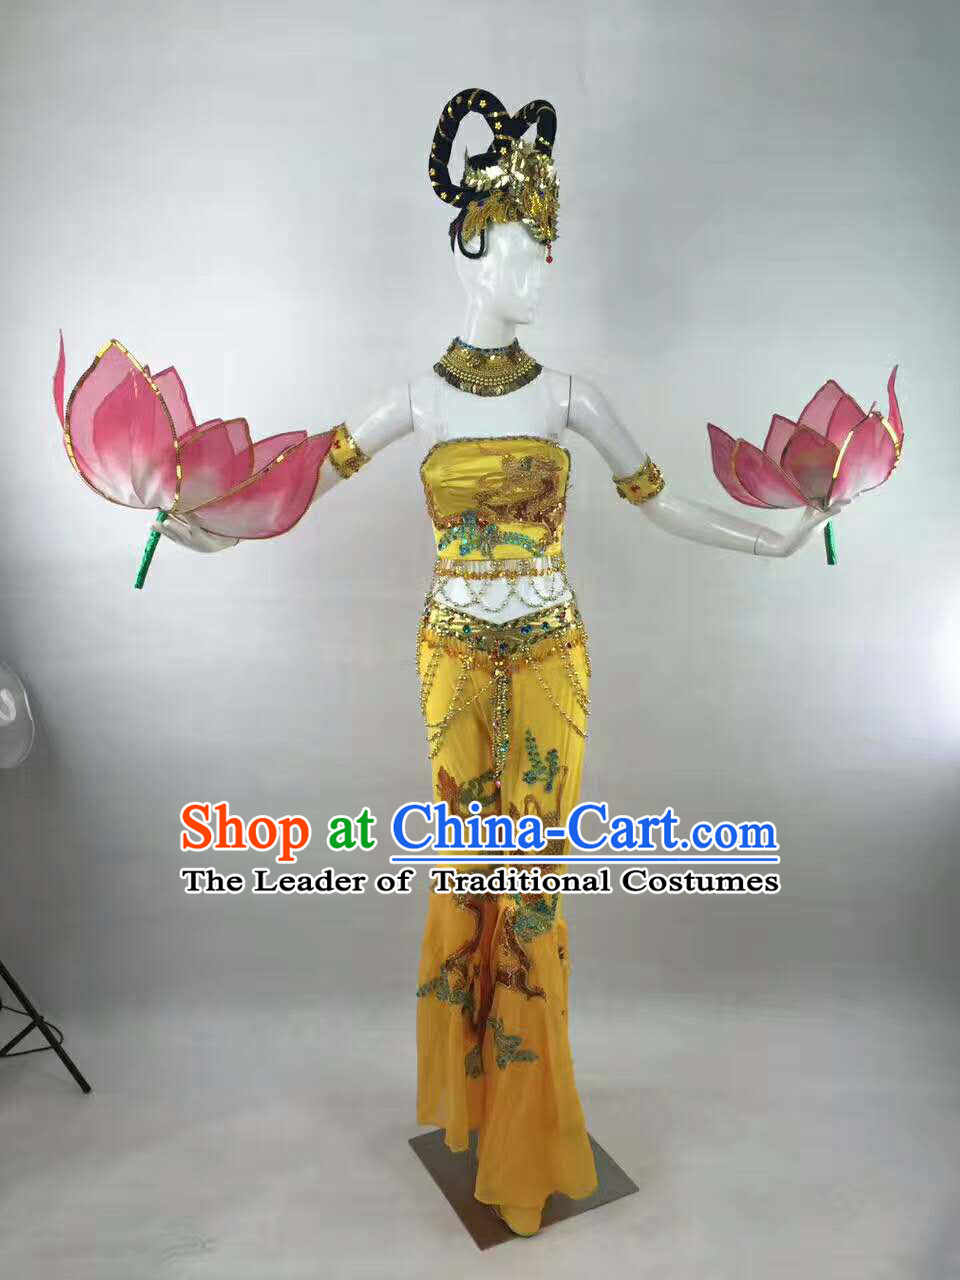 Professional Stage Performance Costumes Made to Order Custom Tailored Dance Costume and Classical Headpieces Hair Accessories